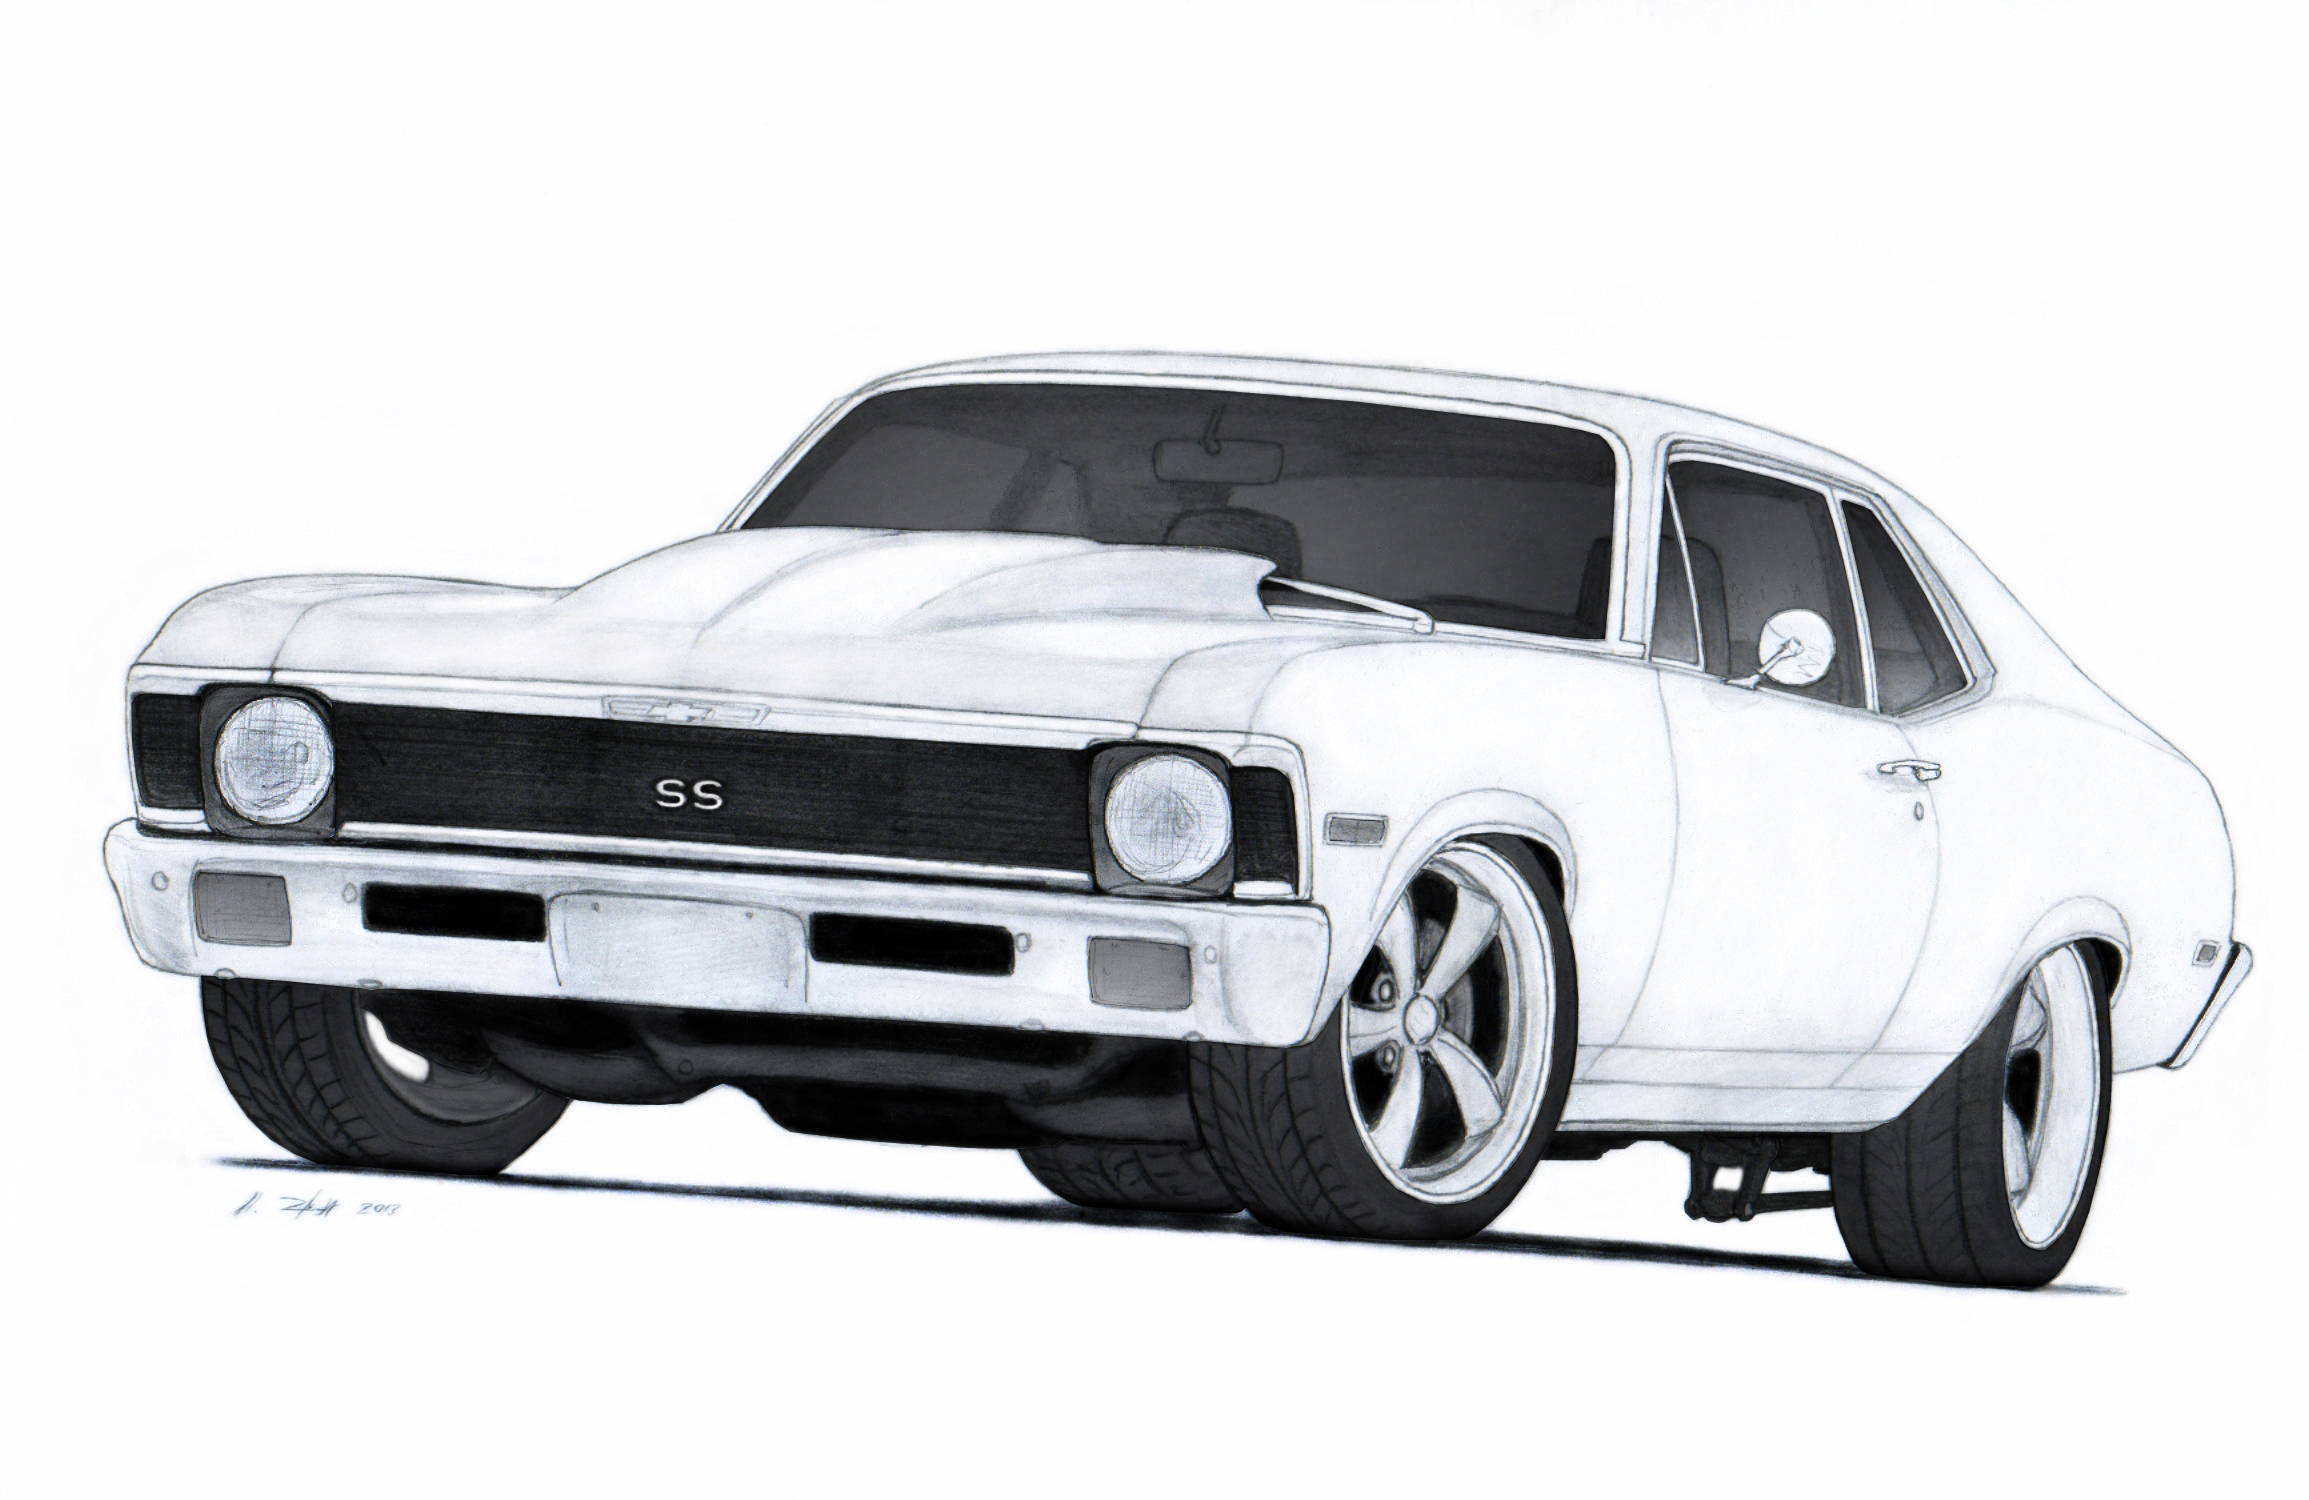 1972 chevrolet nova ss pro touring drawing by vertualissimo on deviantart. Black Bedroom Furniture Sets. Home Design Ideas